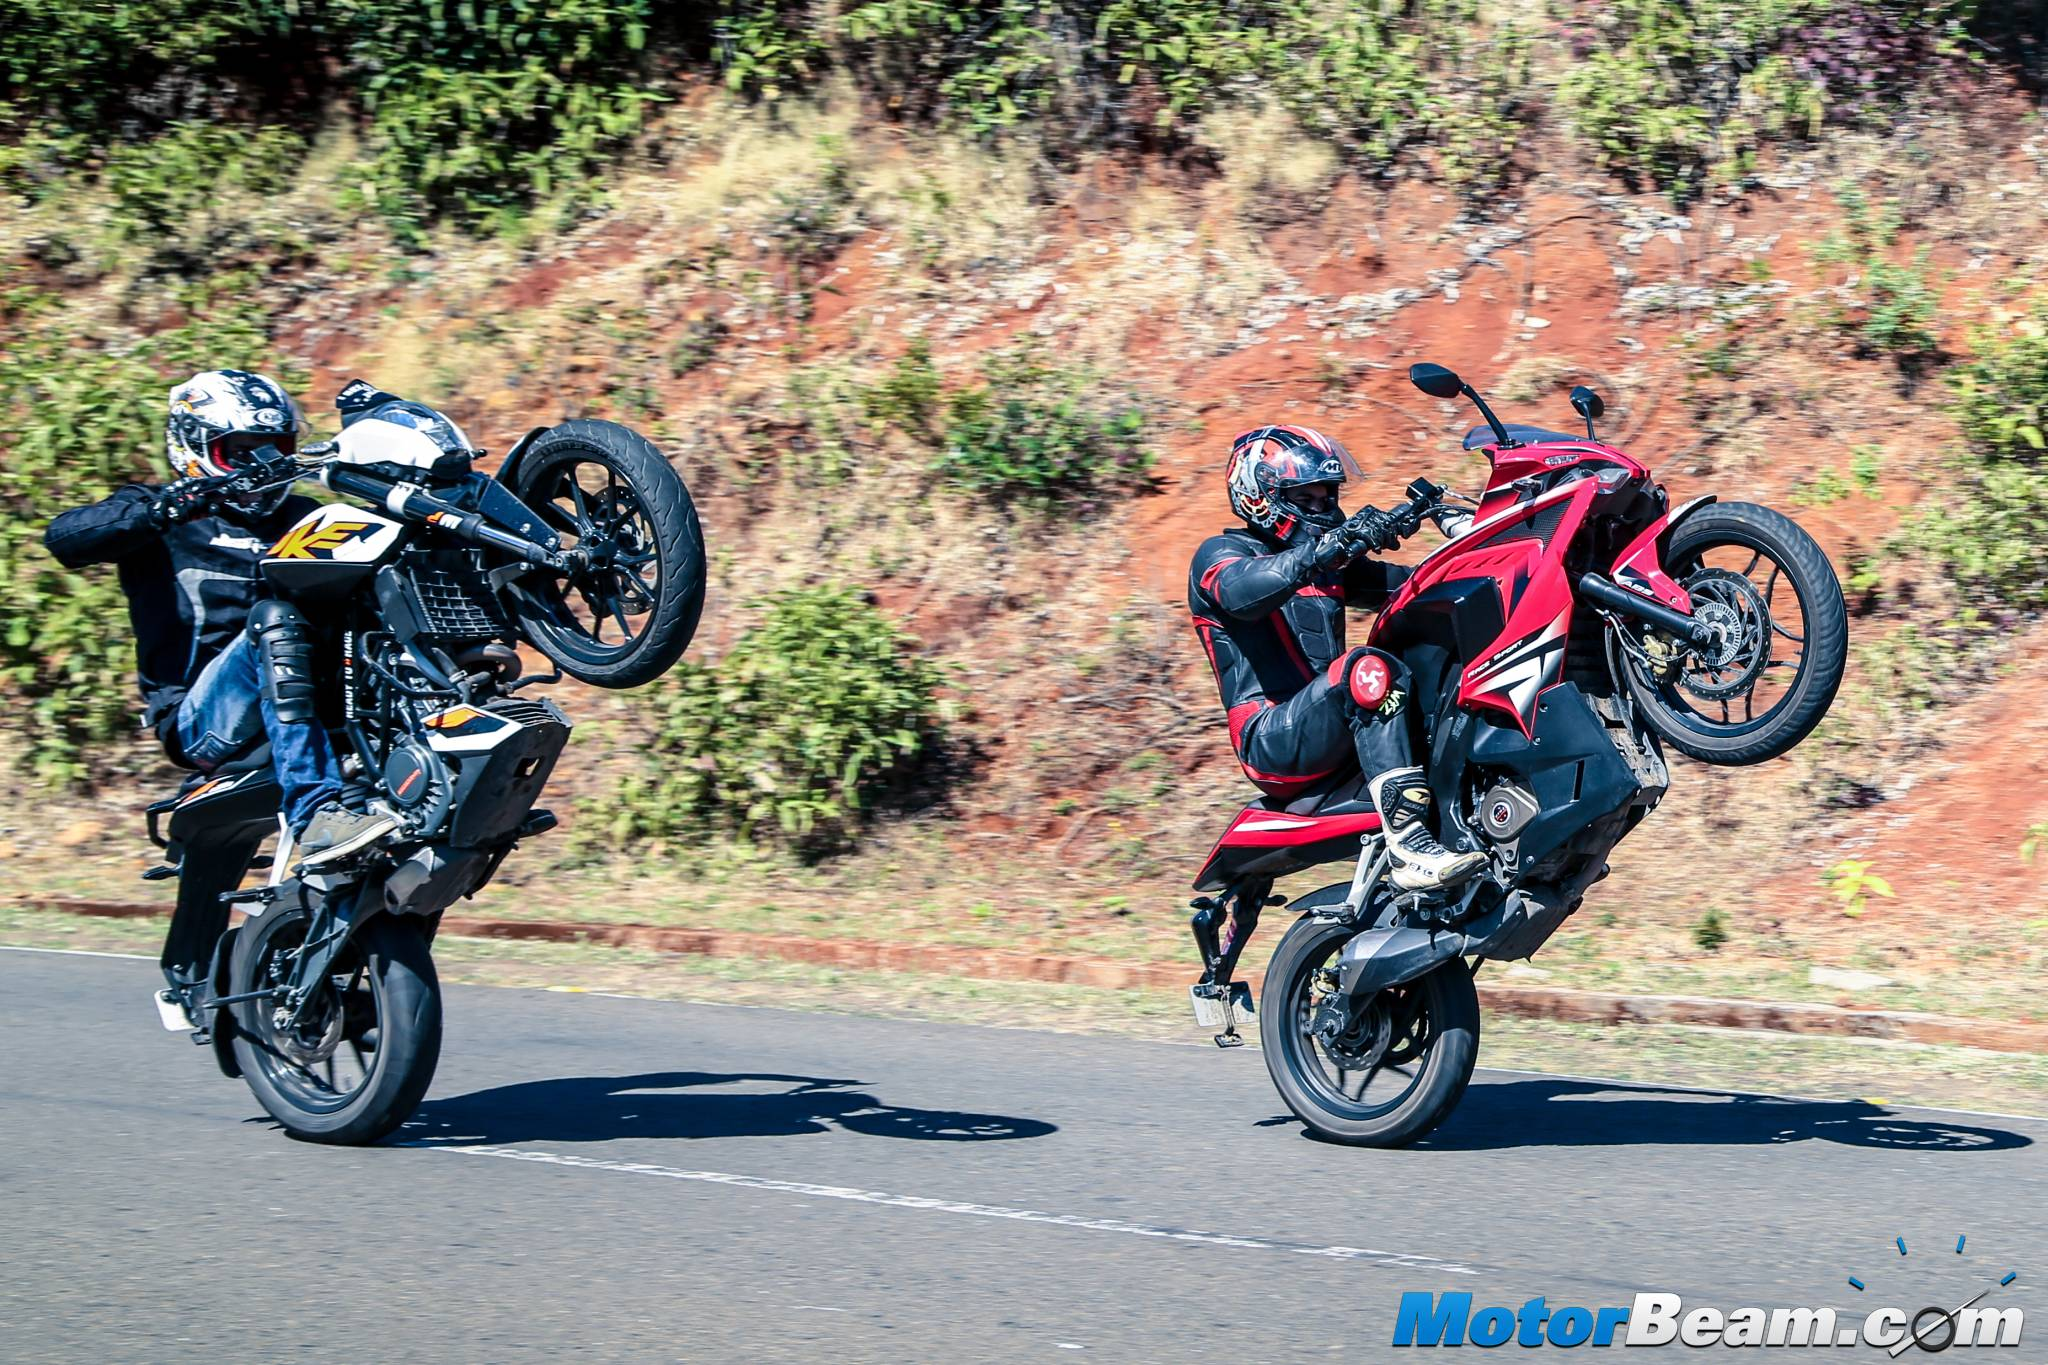 Pulsar RS 200 vs KTM Duke 200